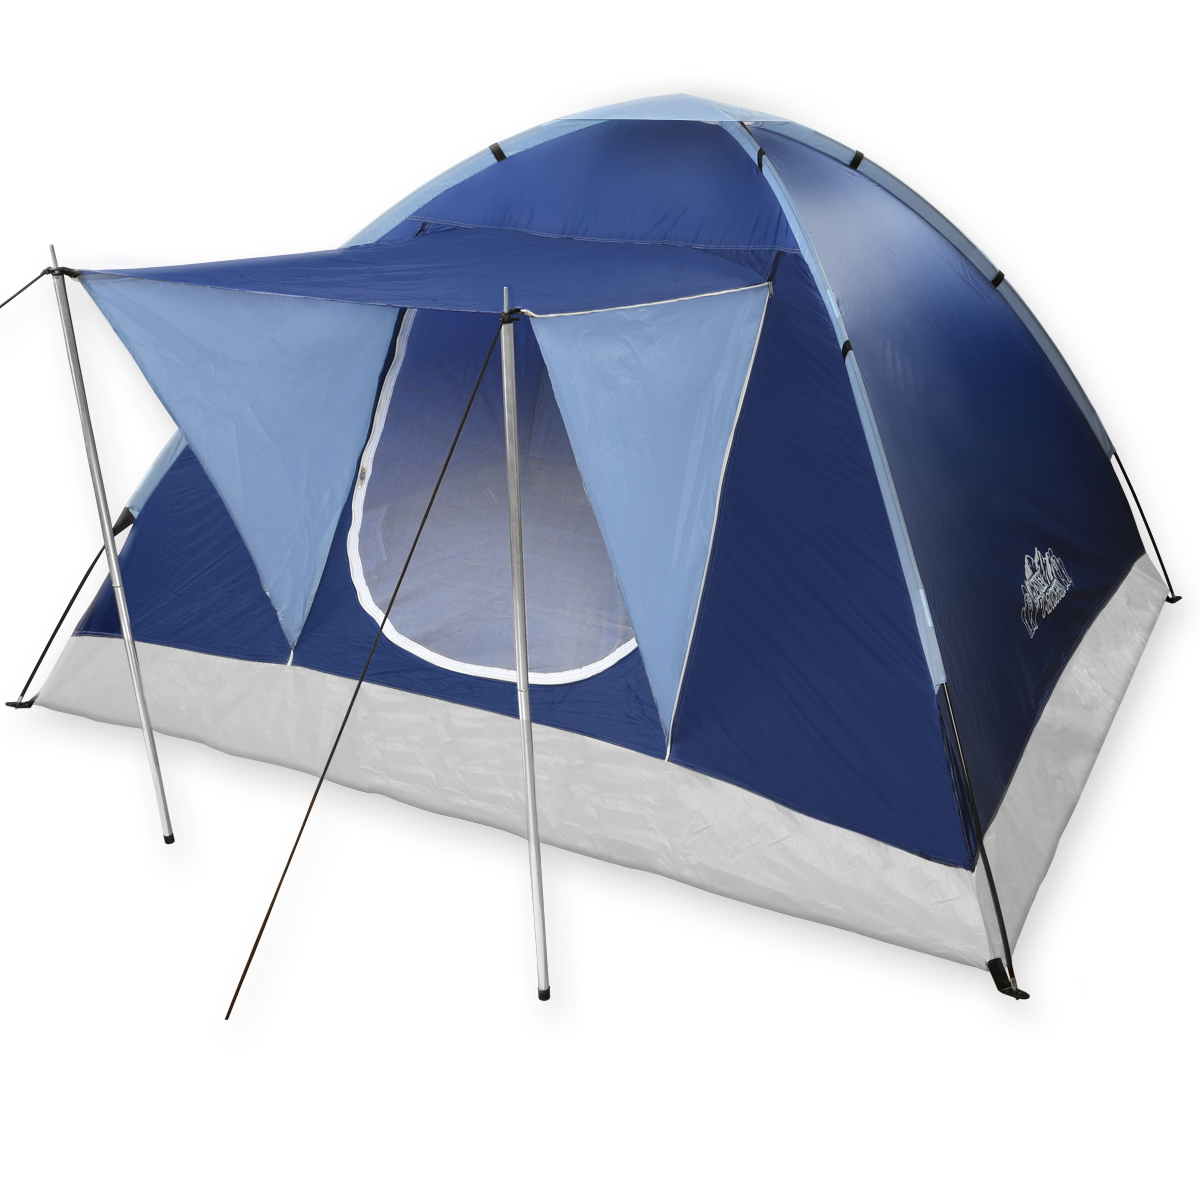 monkey mountain 3 personen igluzelt tent camping zelt familienzelt kuppelzelt ebay. Black Bedroom Furniture Sets. Home Design Ideas